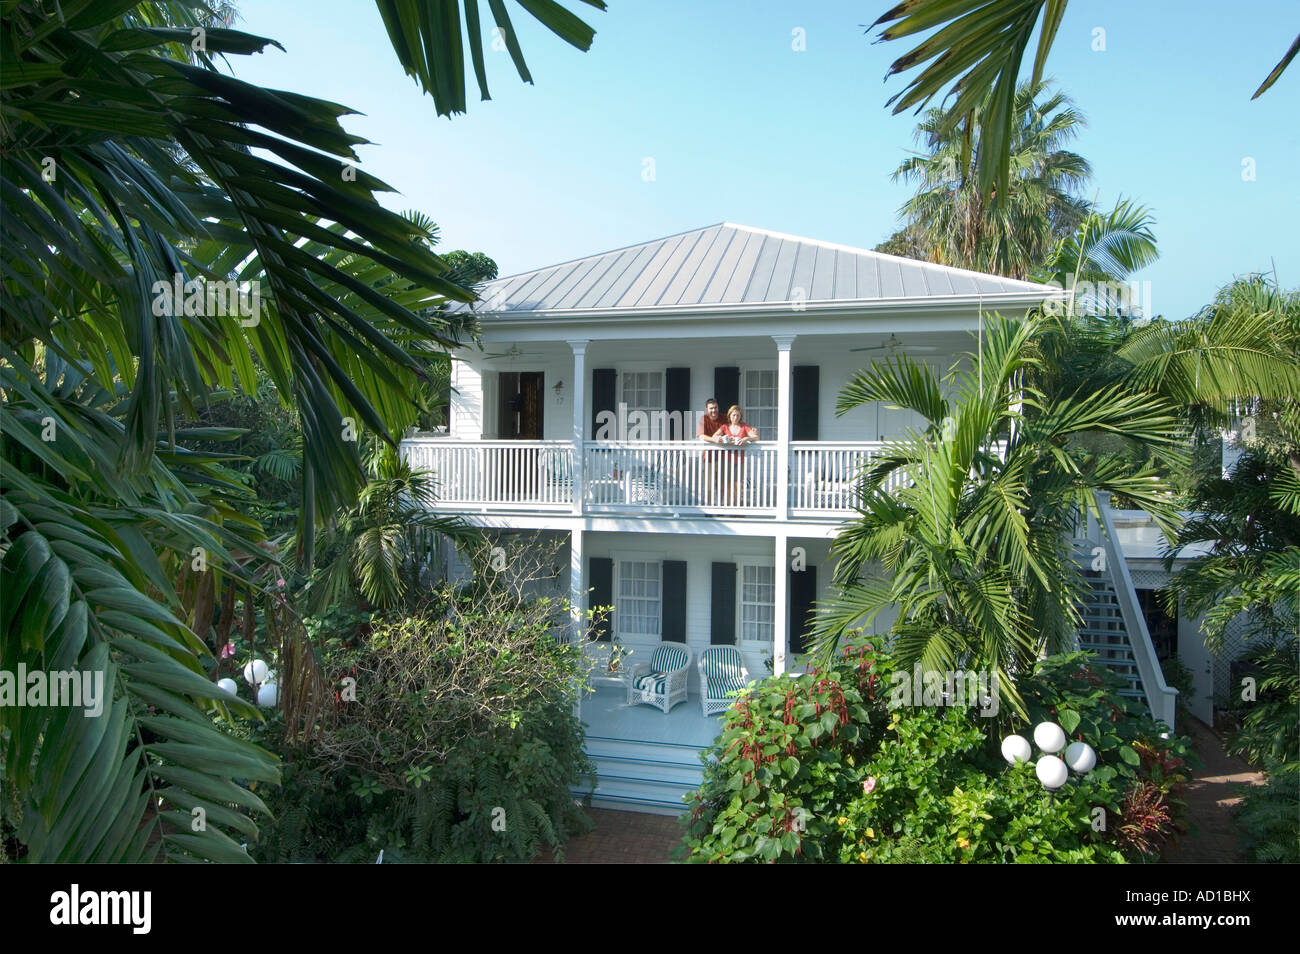 Superb The Gardens Hotel, Key West, Florida, USA Nice Ideas